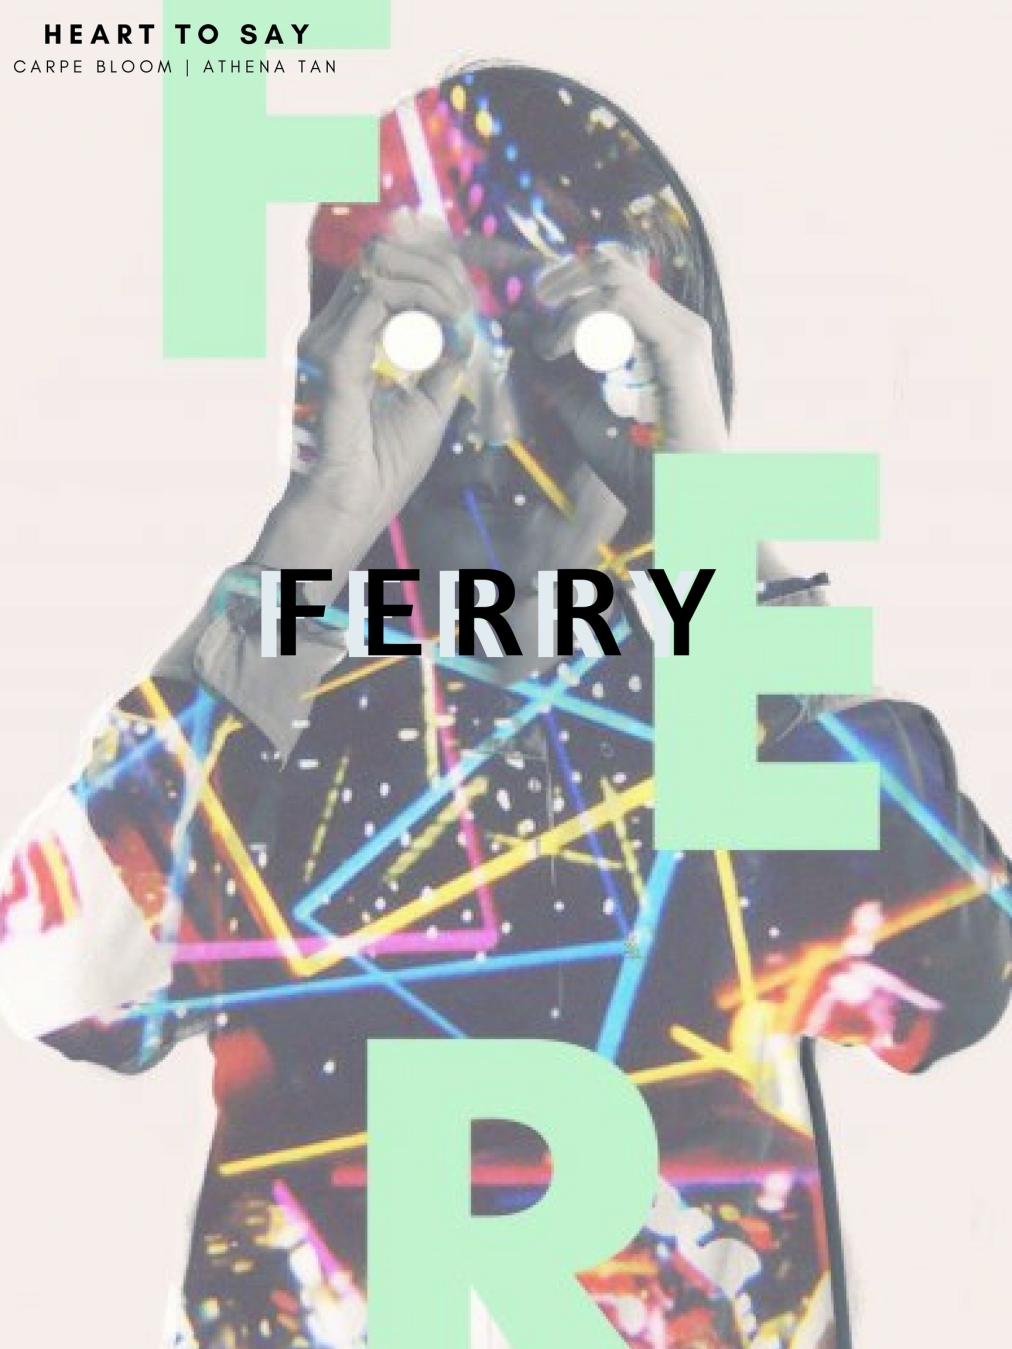 HEART TO SAY WITH FERRY